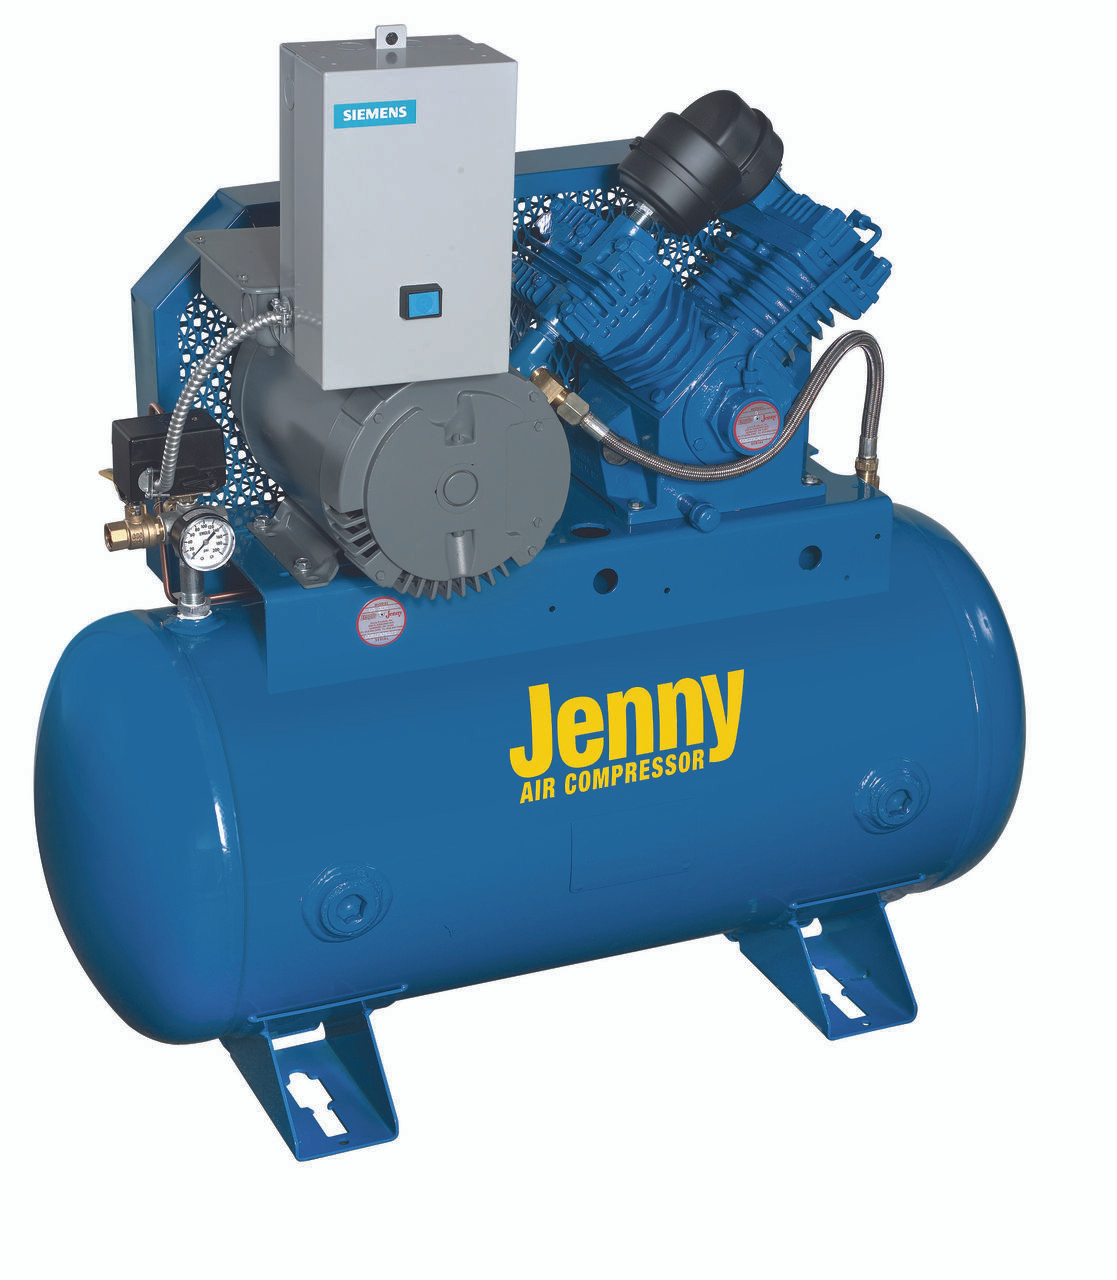 Jenny G5S-30UMS 5 HP 230 Volt Single Phase Single Stage Fire Sprinkler System Air Compressor